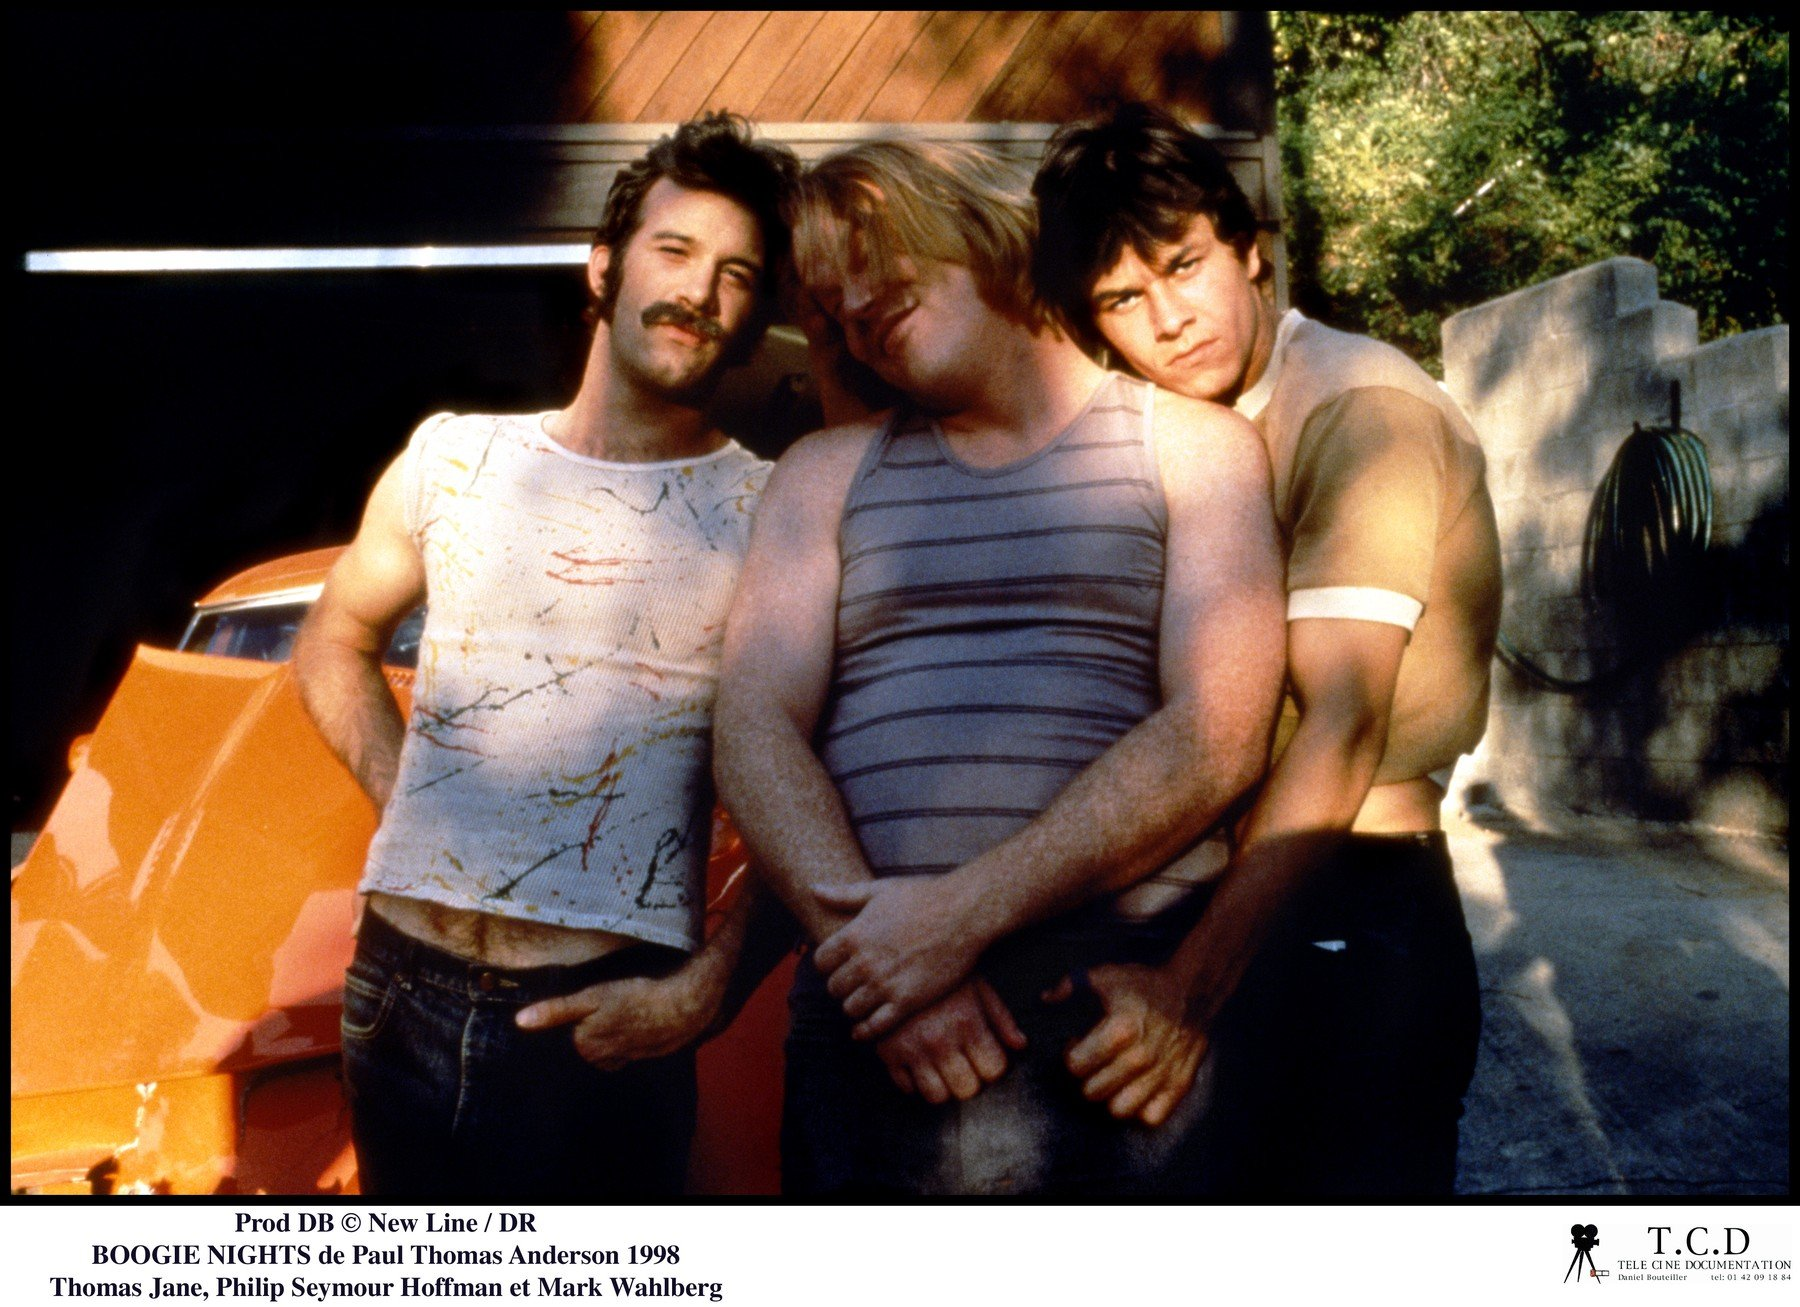 Prod DB ©New Line / DR BOOGIE NIGHTS (BOOGIE NIGHTS) de Paul Thomas Anderson 1998 USA avec Thomas Jane, Philip Seymour Hoffman et Mark Wahlberg homosexuels, porno-stars,, Image: 173066738, License: Rights-managed, Restrictions: NO RESTRICTION, Model Release: no, Credit line: Profimedia, Visual movies